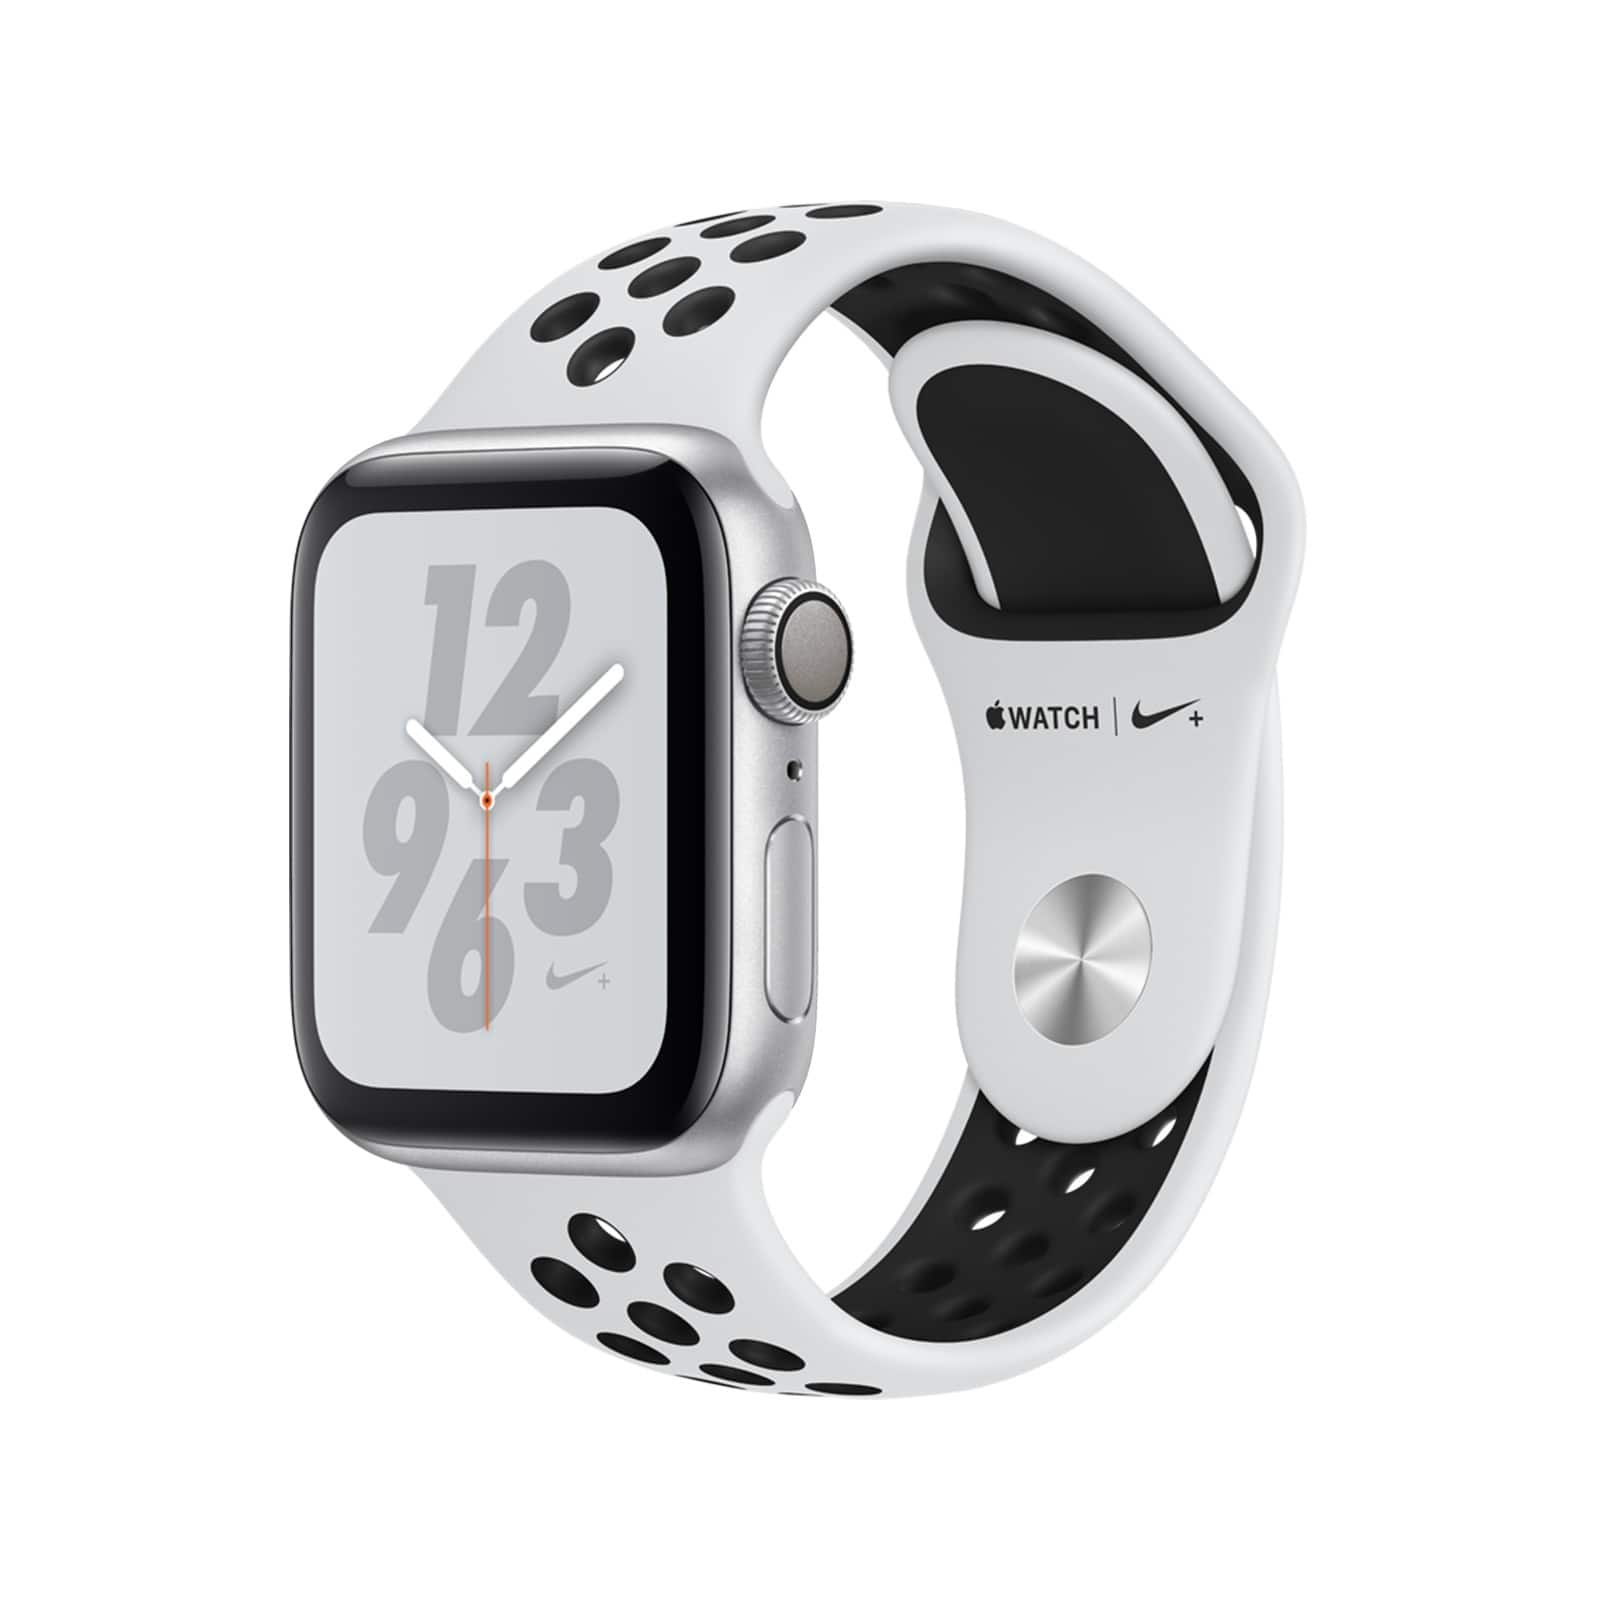 All Apple Watch Nike+ Series 4 on Sale at AAFES for $30 off (+ no tax!) $368